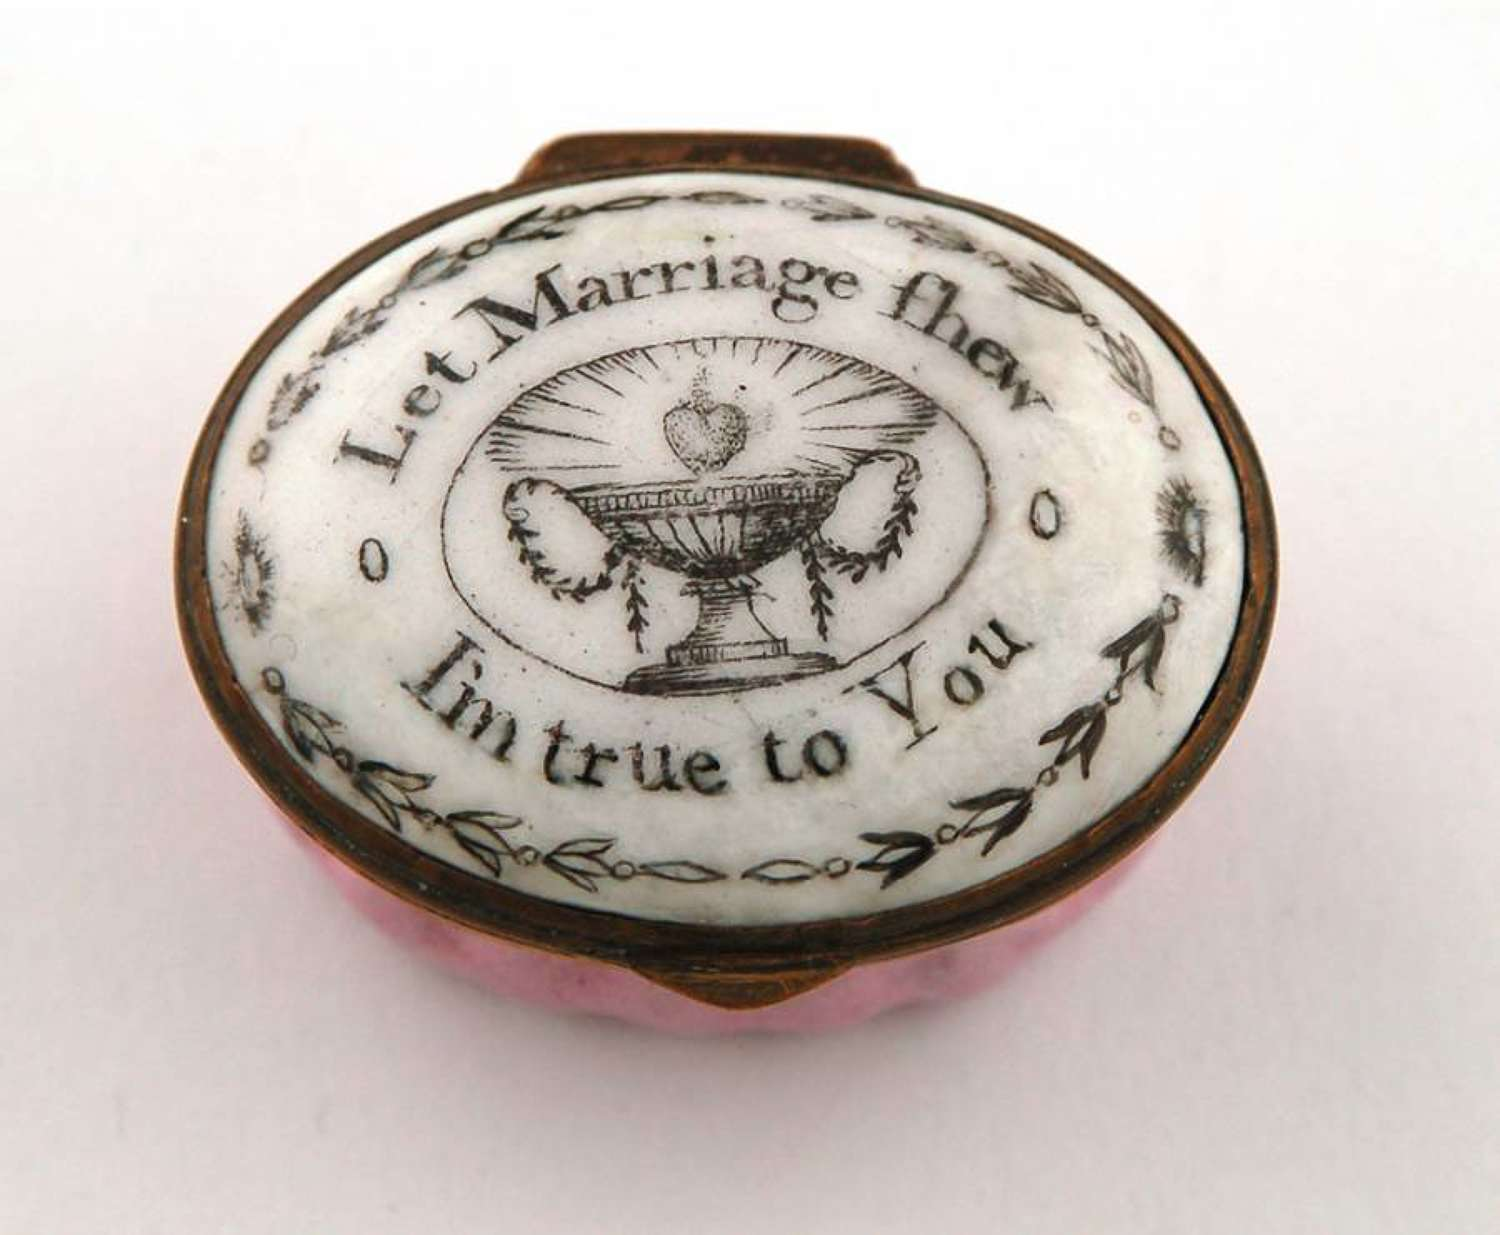 Marriage patch box